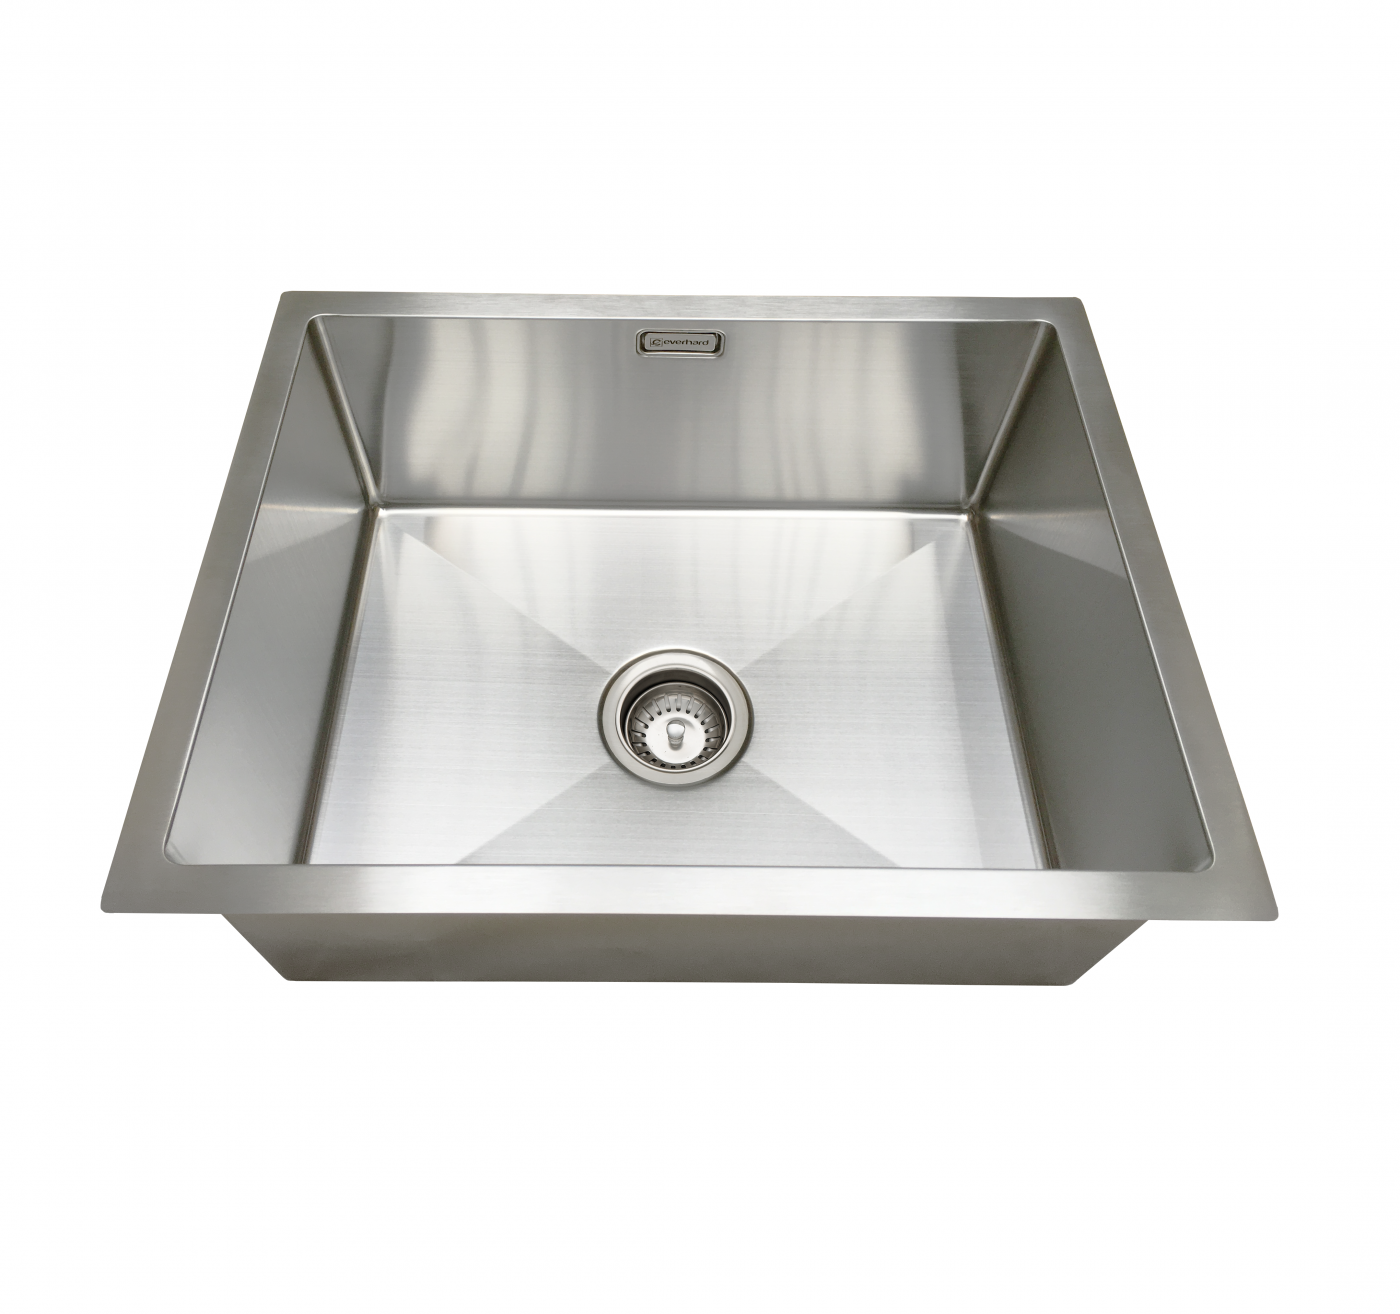 42l Over Undermount Utility Sink 580x445mm Builders